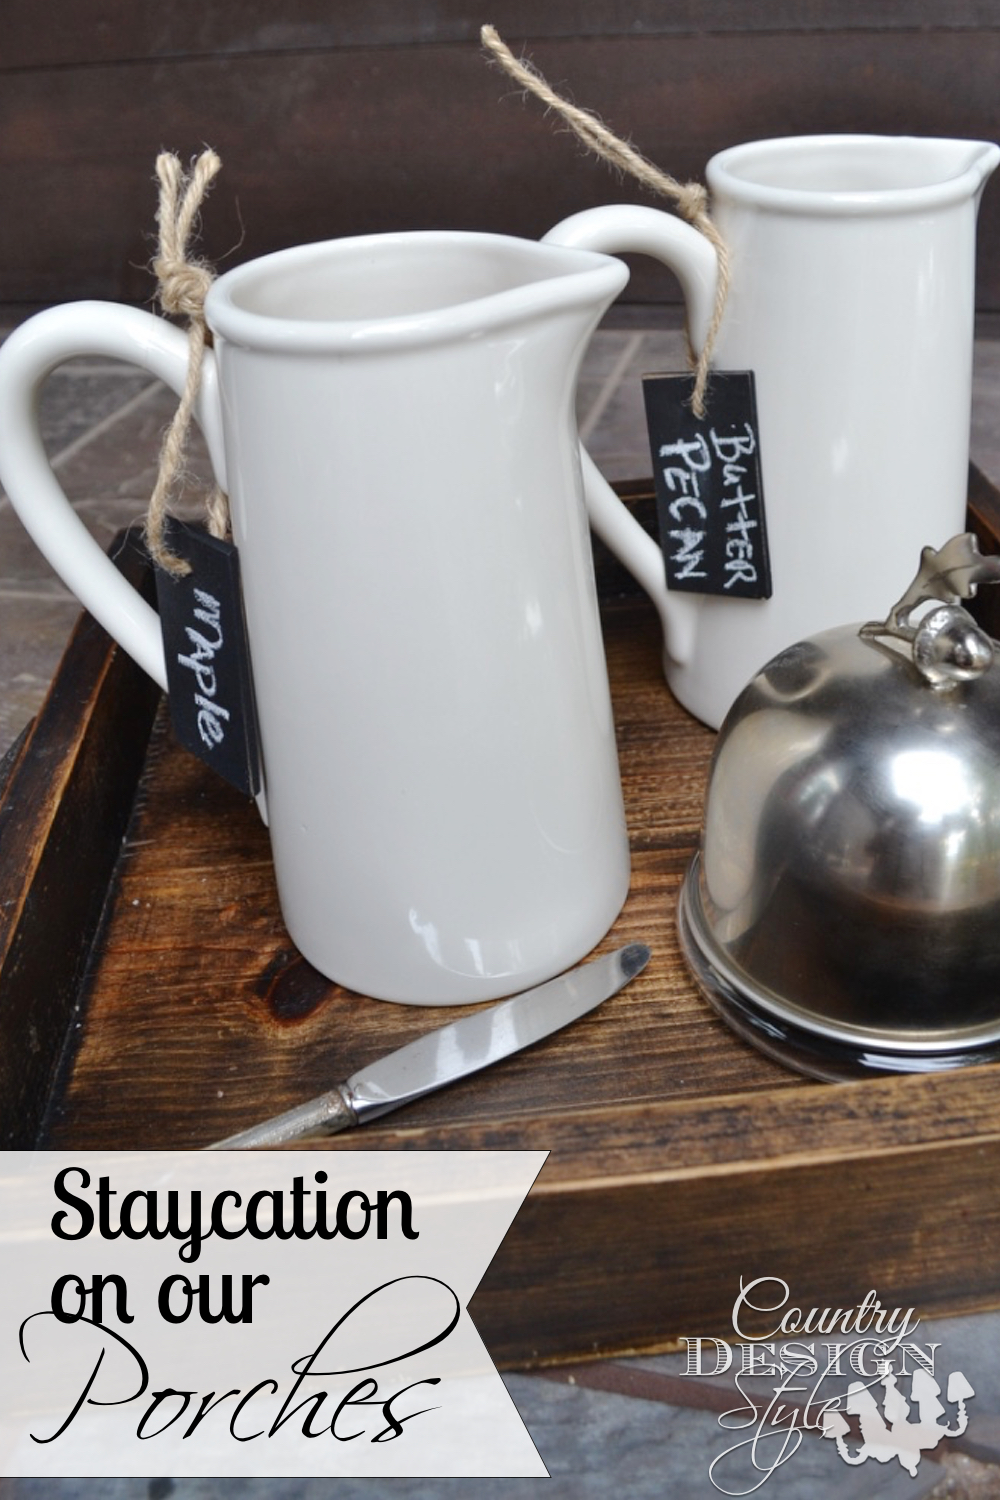 The perfect place for staycation breakfast. Country Design Style